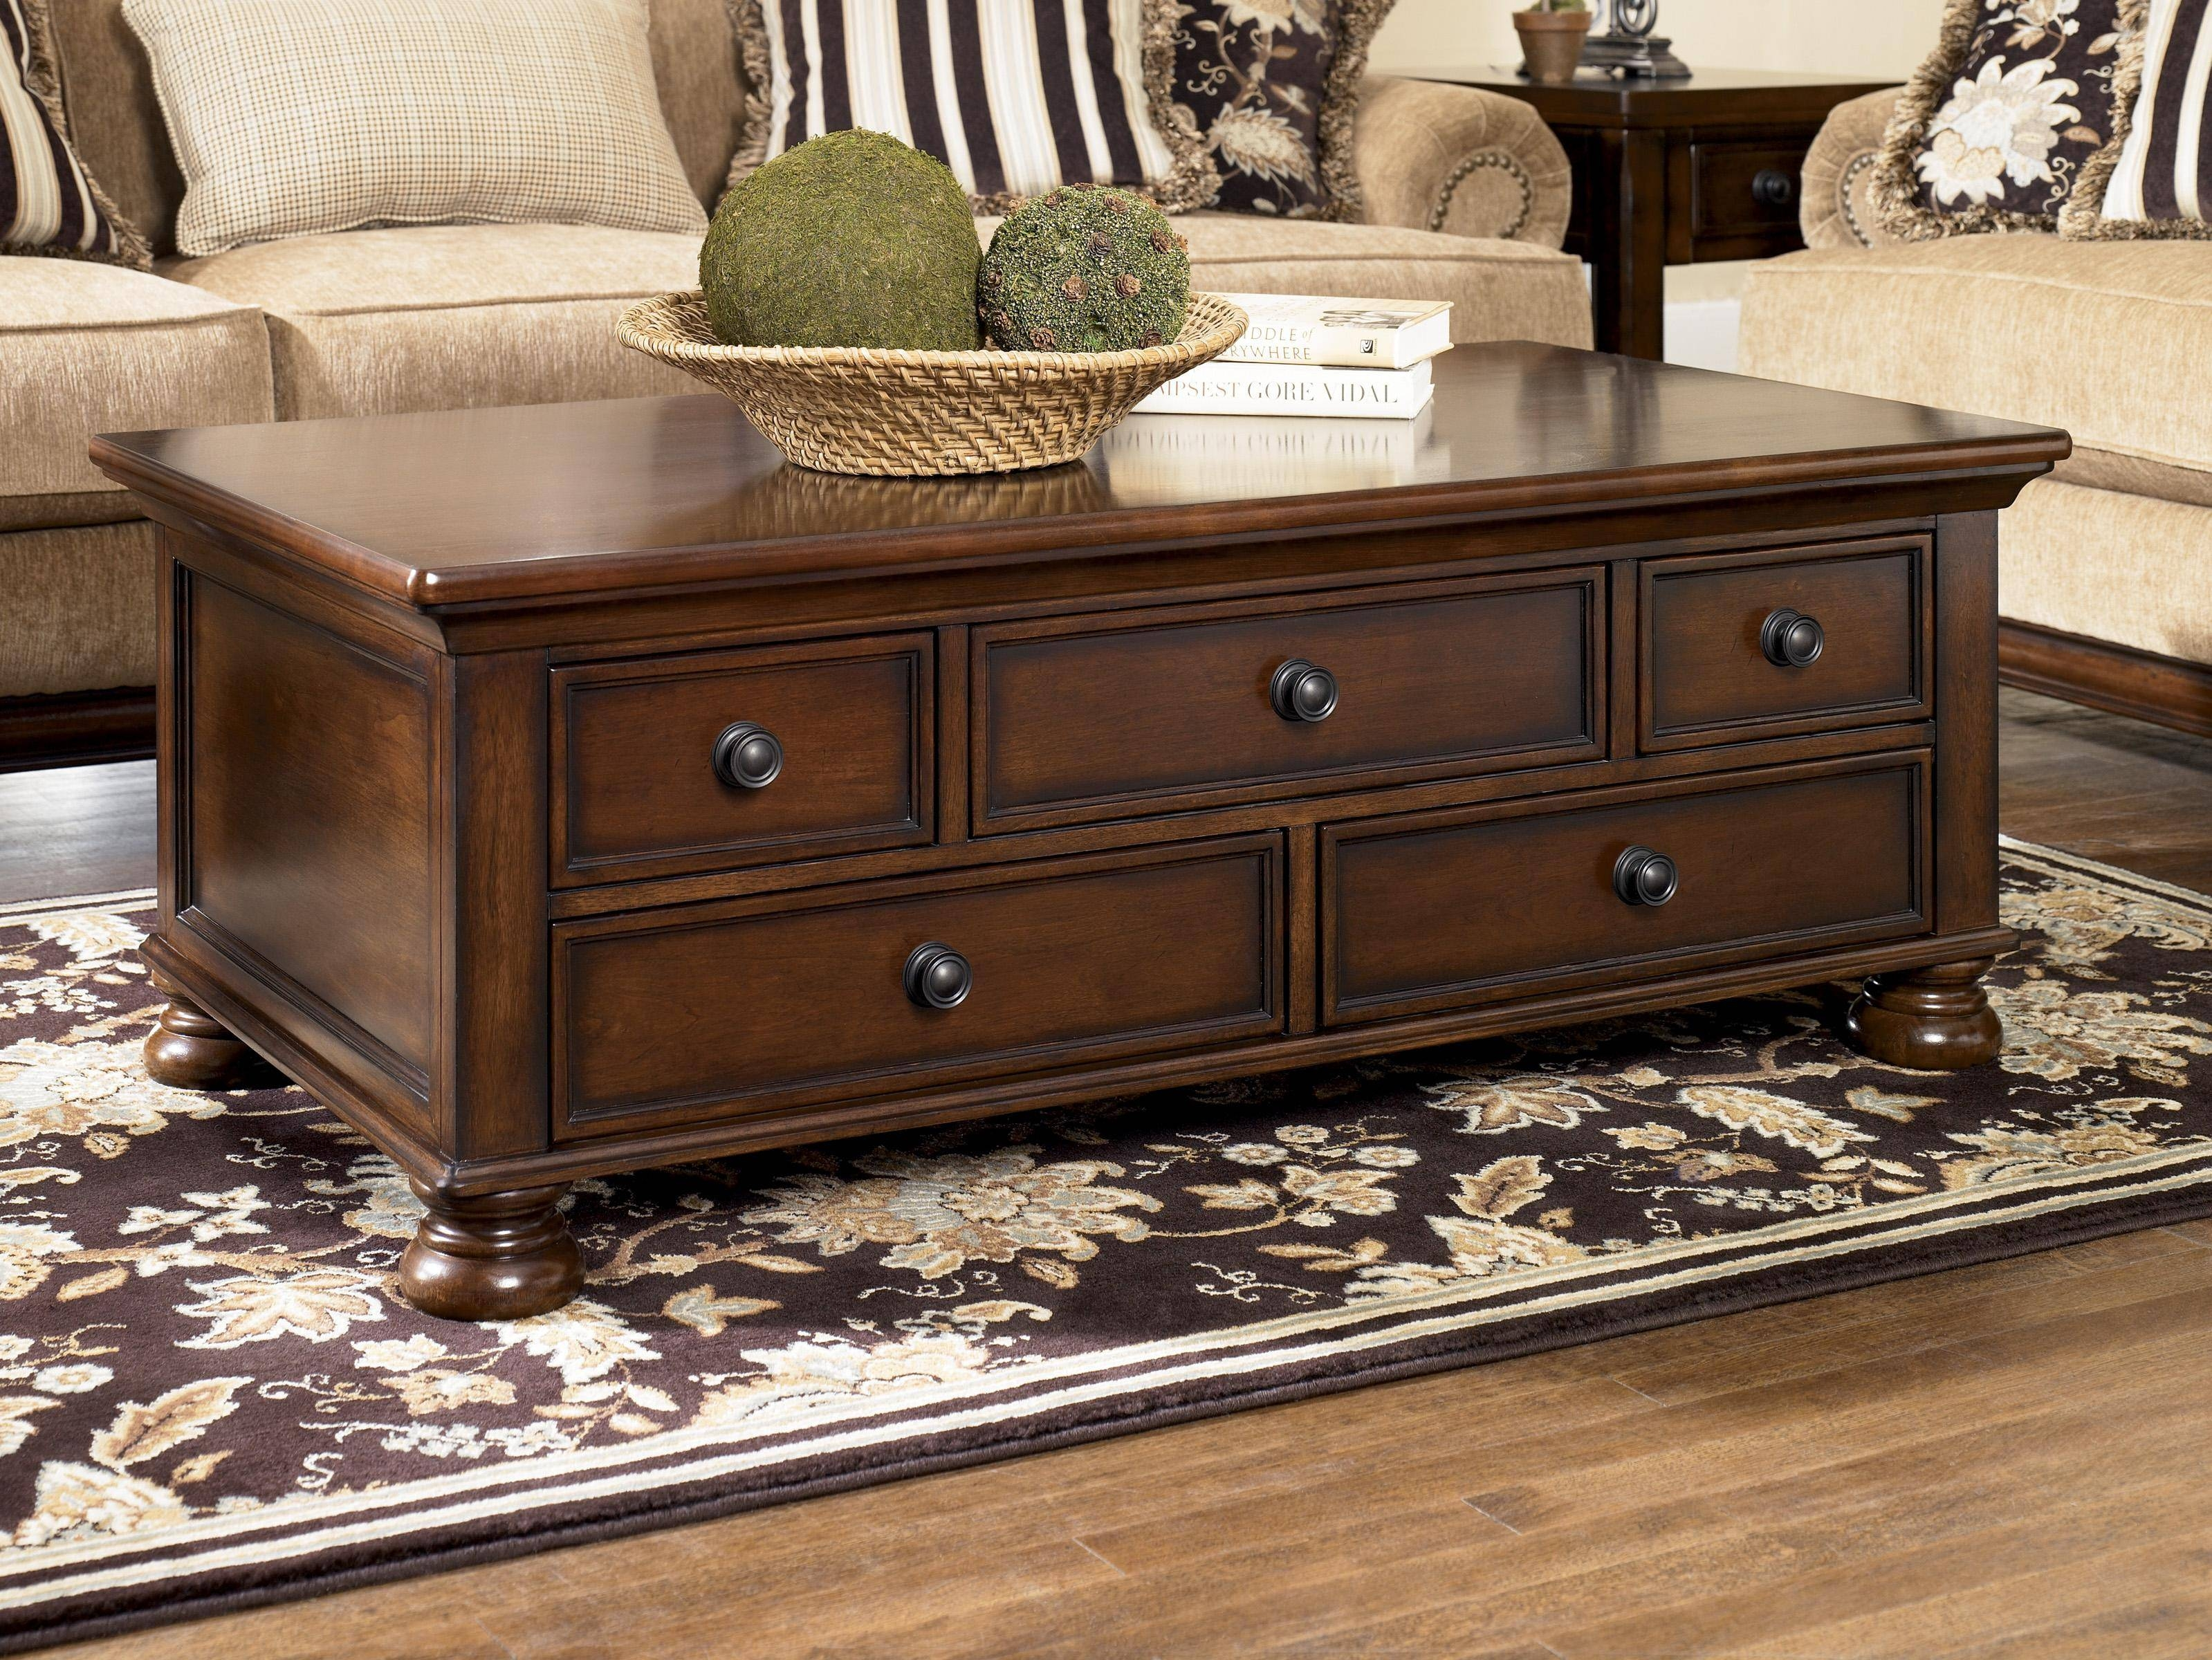 Decorating Ideas Coffee Table With Drawers – Cherry Coffee Tables pertaining to Rustic Coffee Table Drawers (Image 5 of 30)